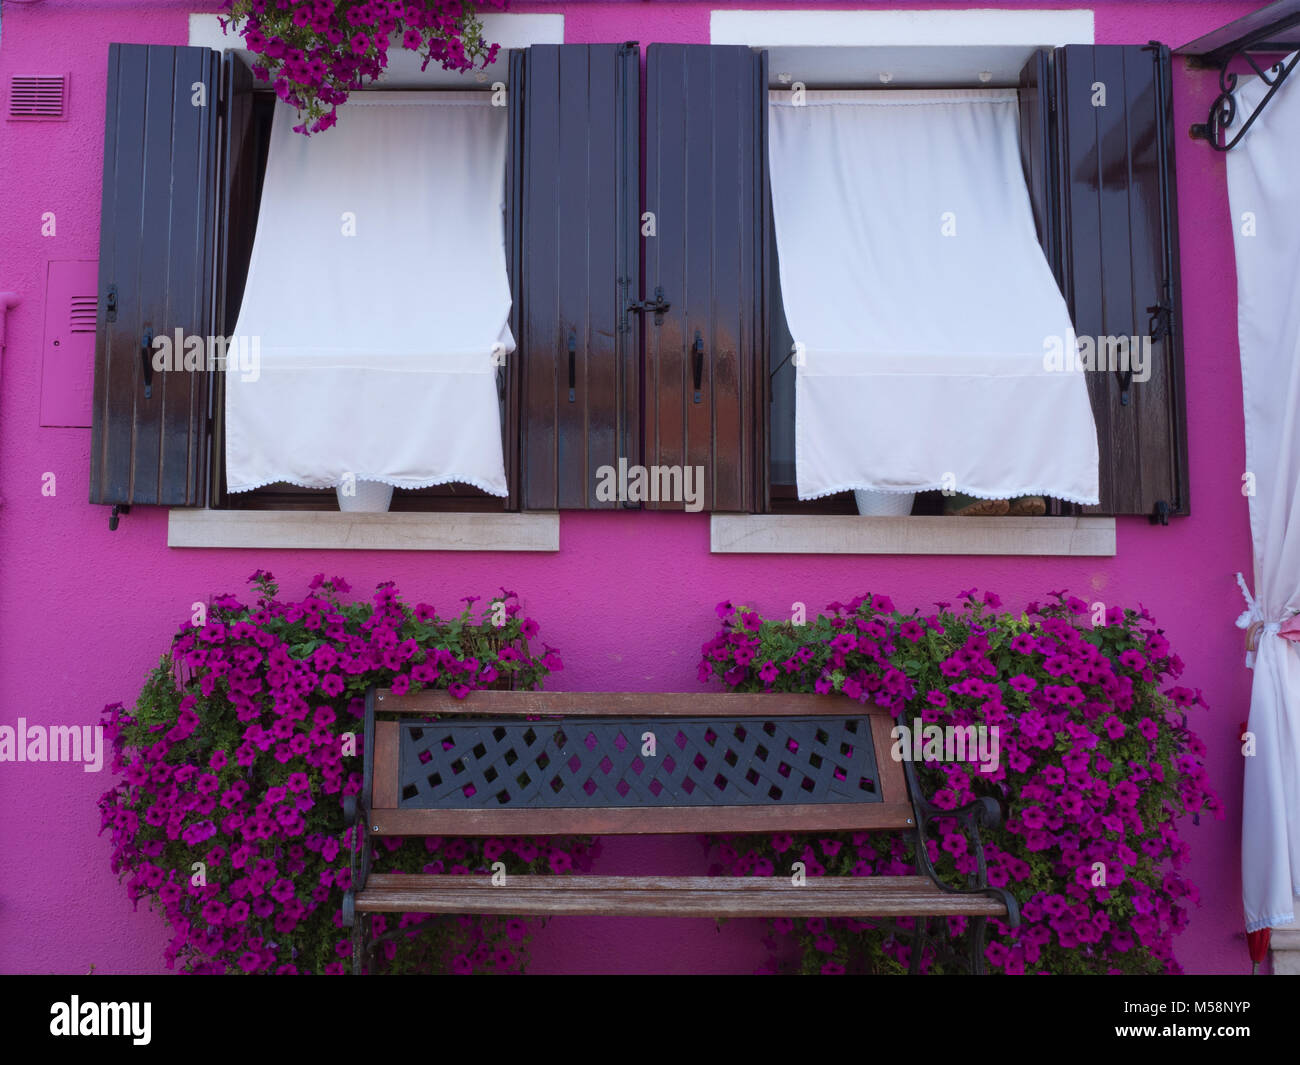 magenta italy stock photos magenta italy stock images alamy. Black Bedroom Furniture Sets. Home Design Ideas